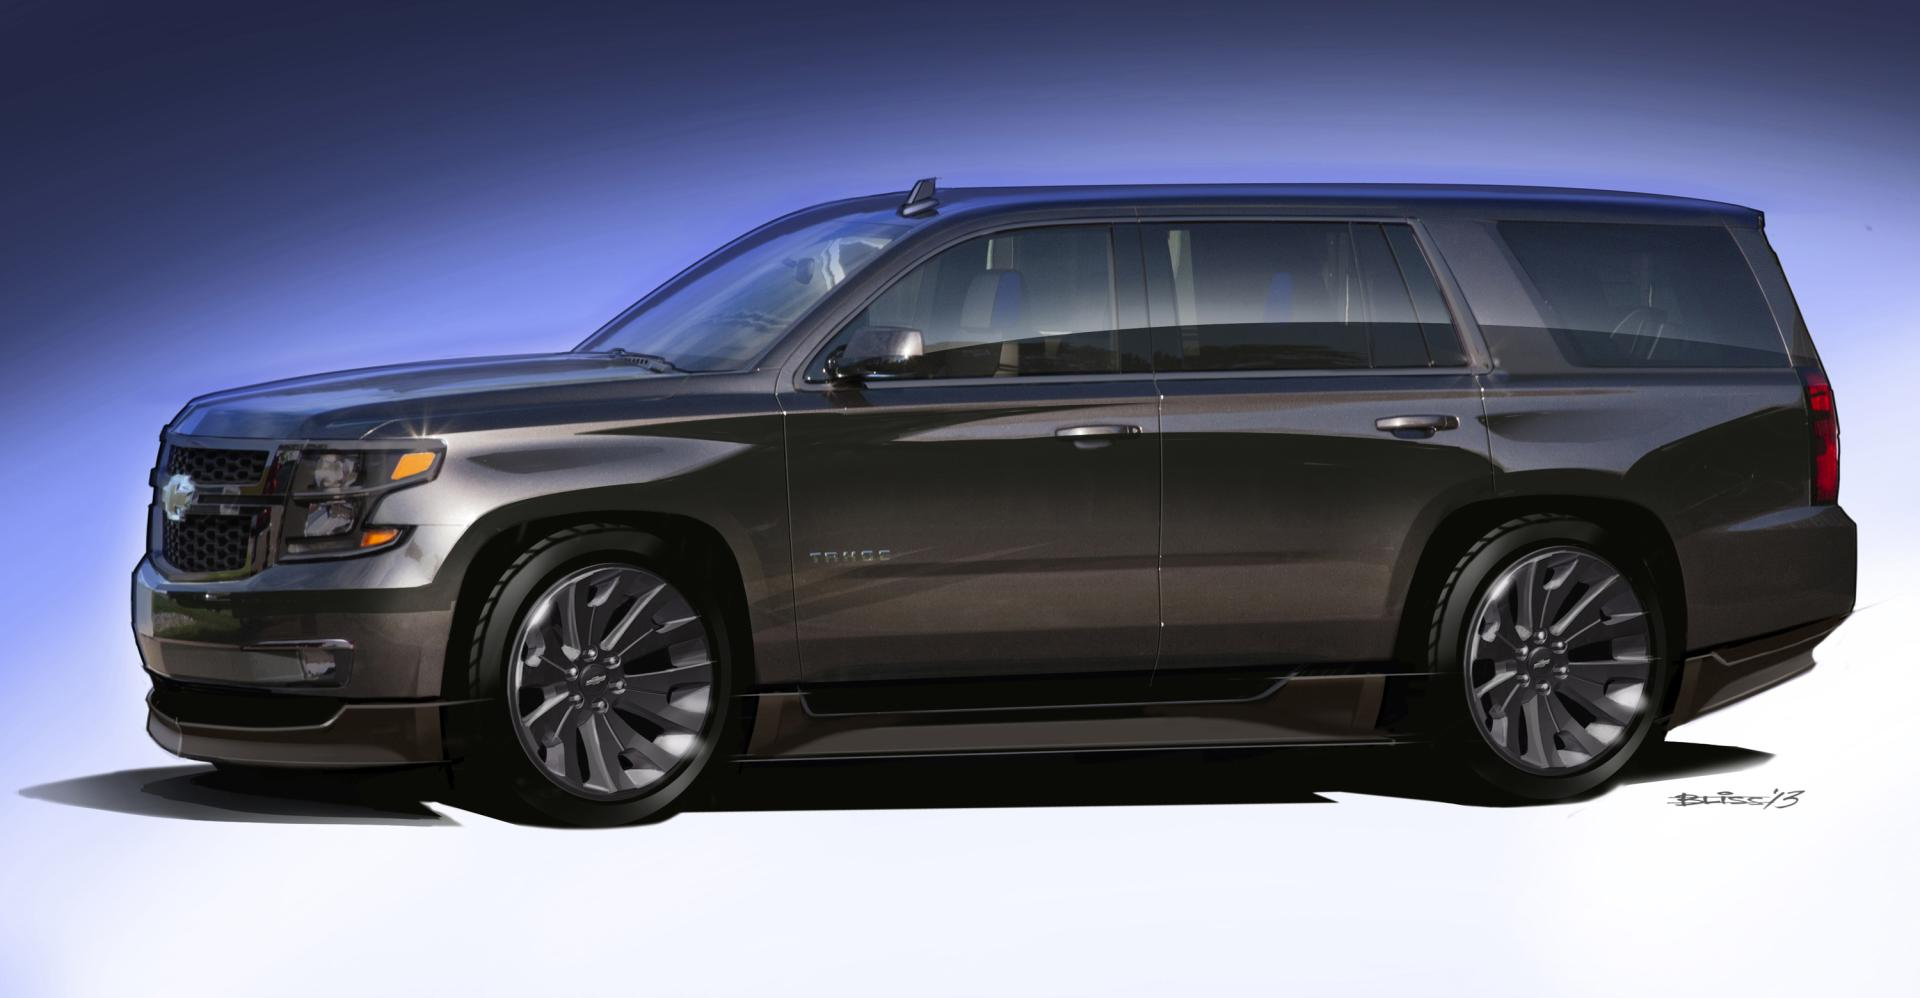 2013 Chevrolet Tahoe Black Concept News and Information